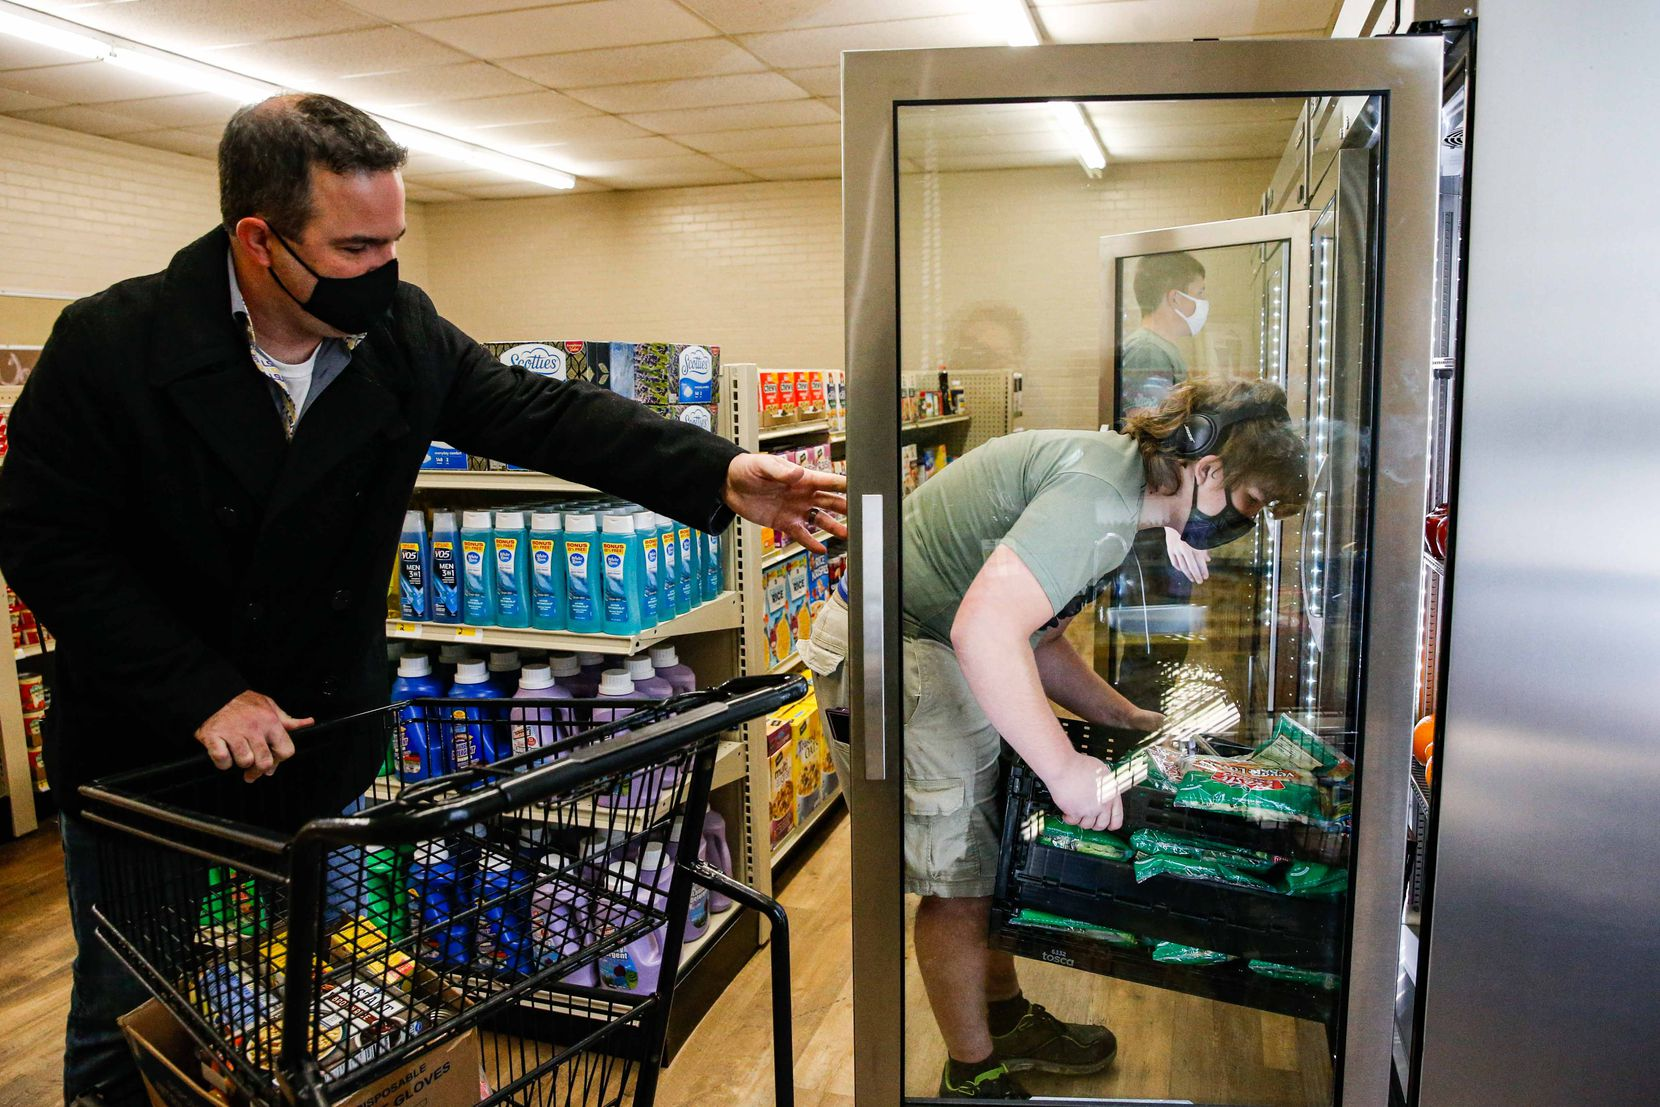 Linda Tutt High School principal Anthony Love helps Preston Westbrook stock a freezer at the school's grocery store.